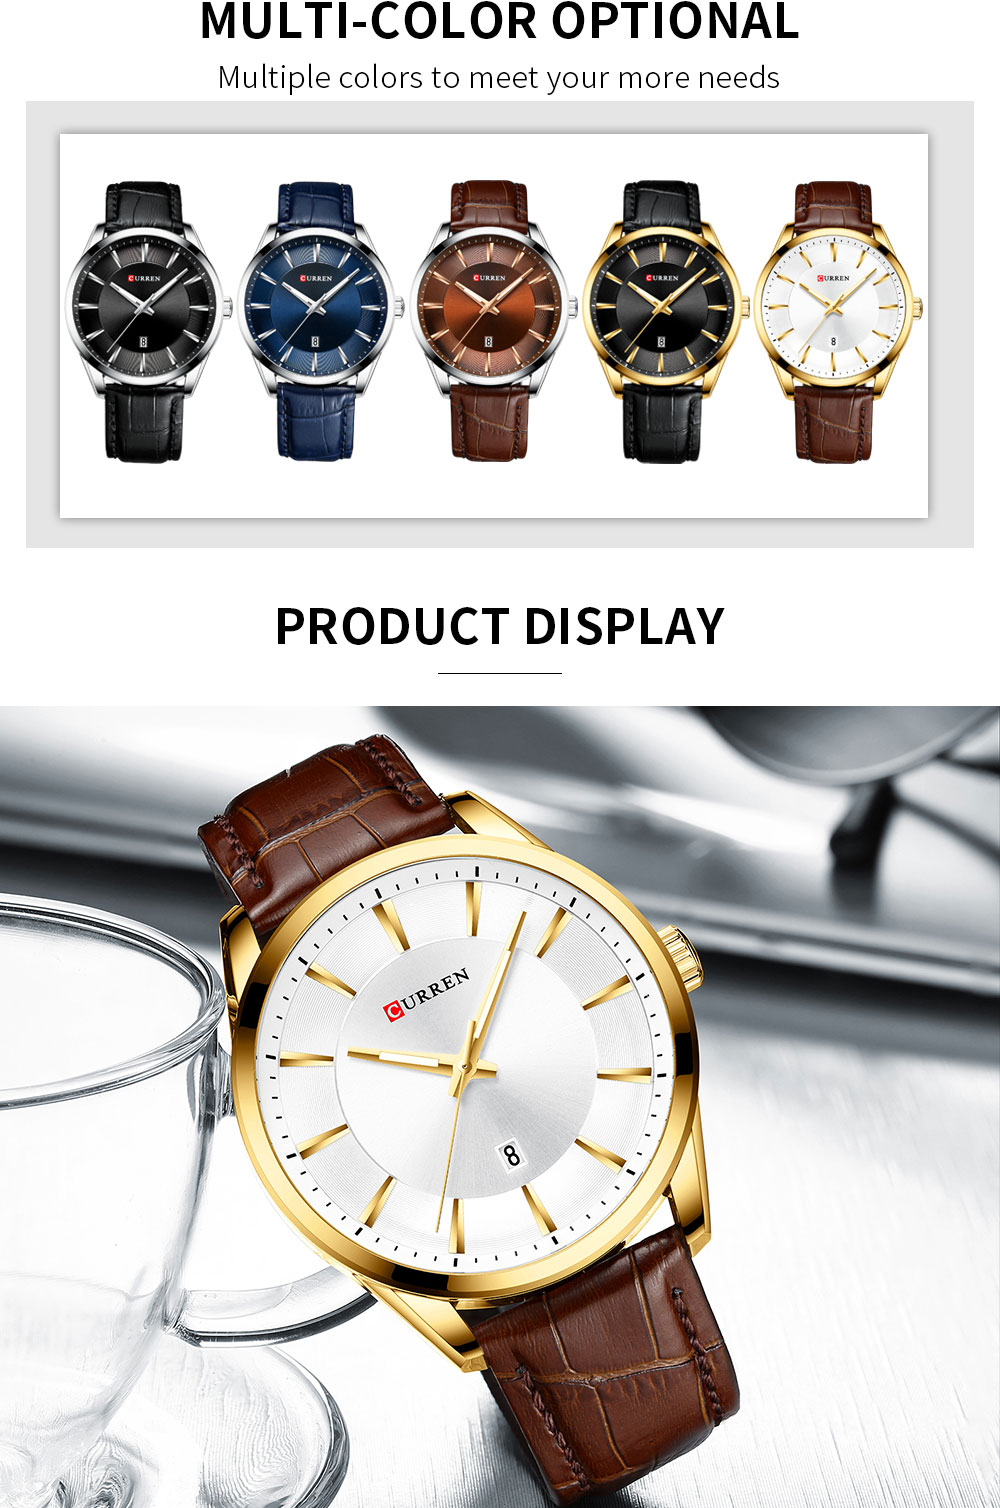 CURREN Quartz Watches for Men Leather Strap Male Wristwatches Top Luxury Brand Business Men's Clock 45 mm Reloj Hombres Hd5184b5786444f89a6a297b1c8d122abL